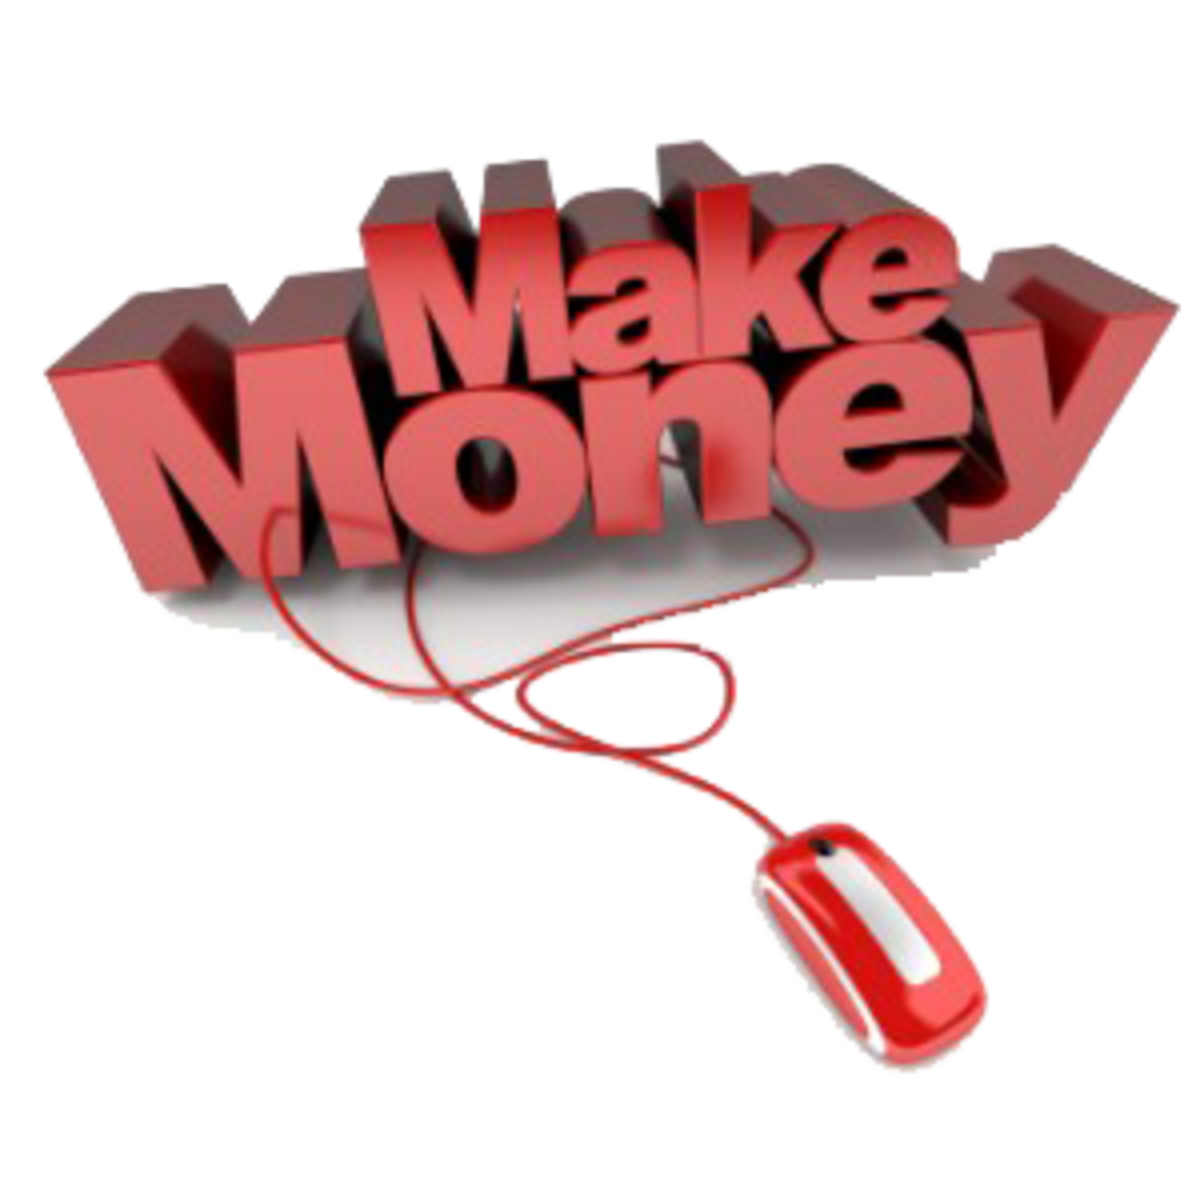 making-money-is-not-so-easy